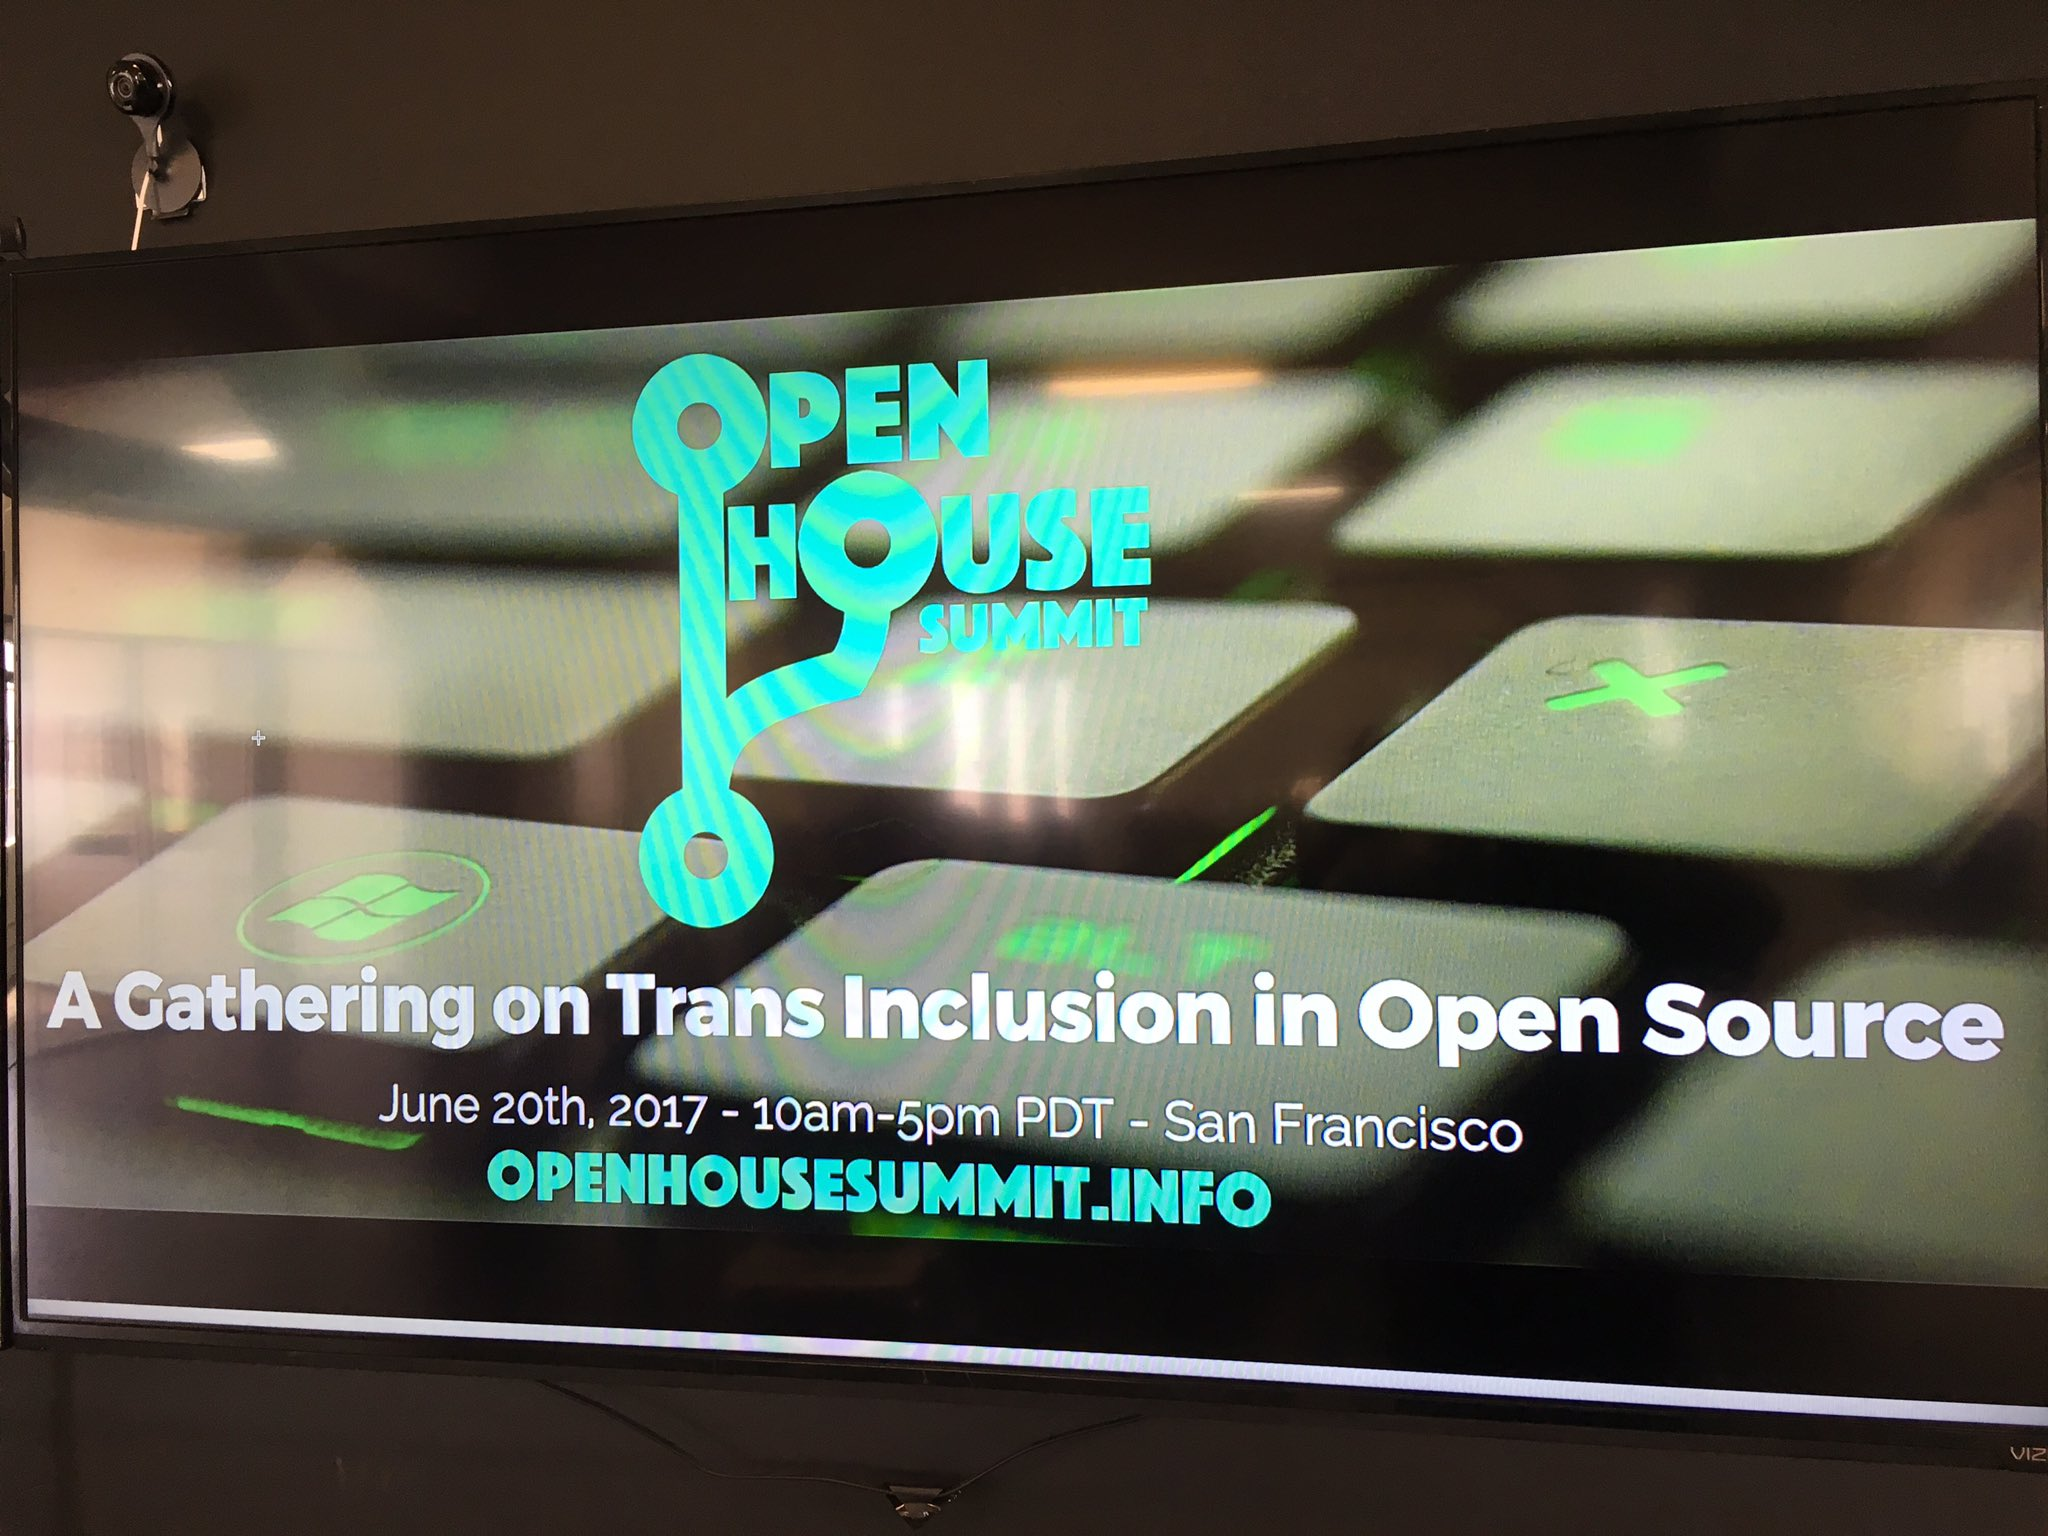 Thumbnail for #OHsummitSF Open House Summit on Open Source